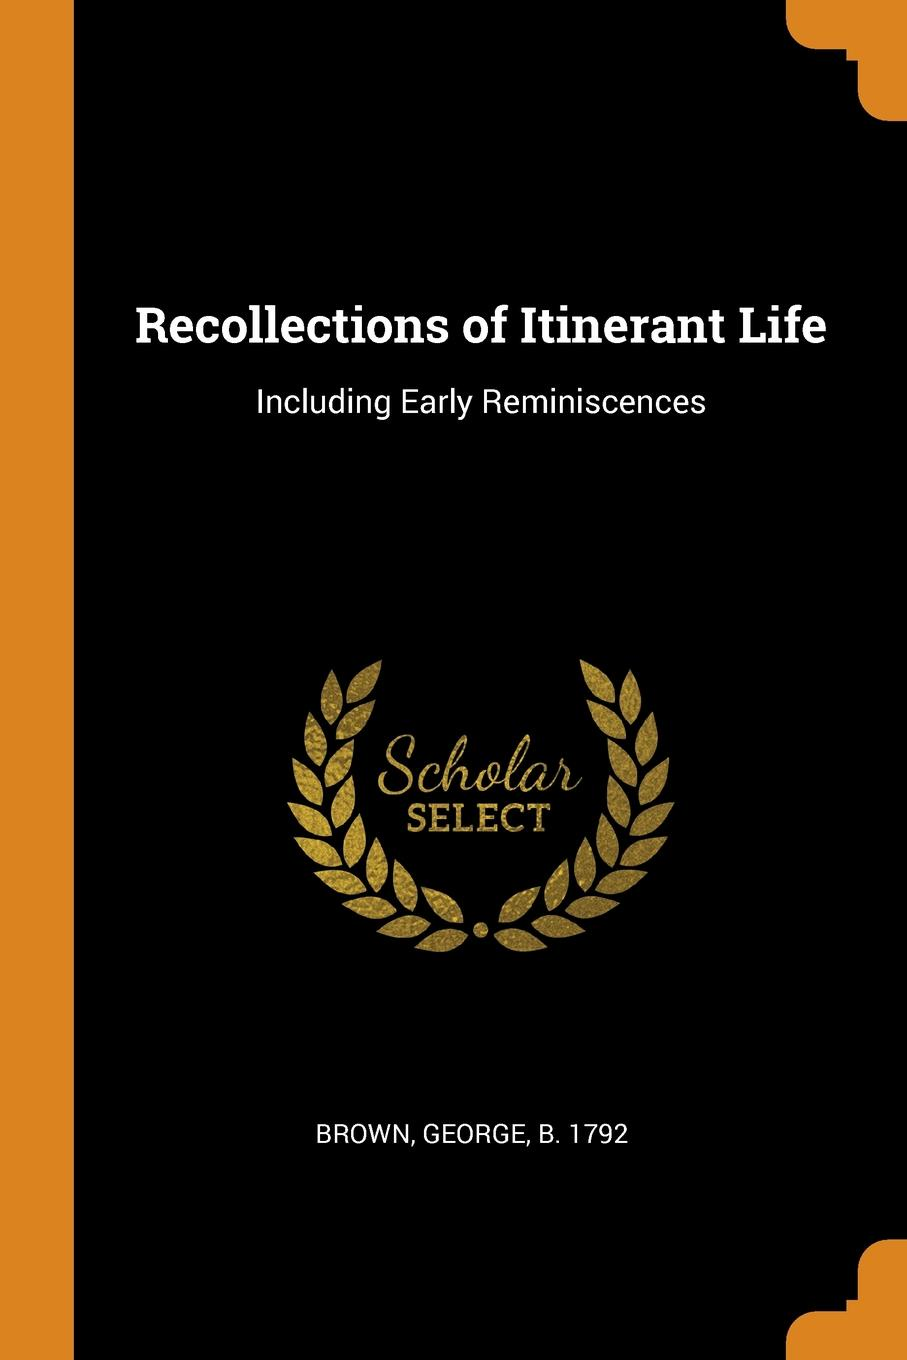 Recollections of Itinerant Life. Including Early Reminiscences